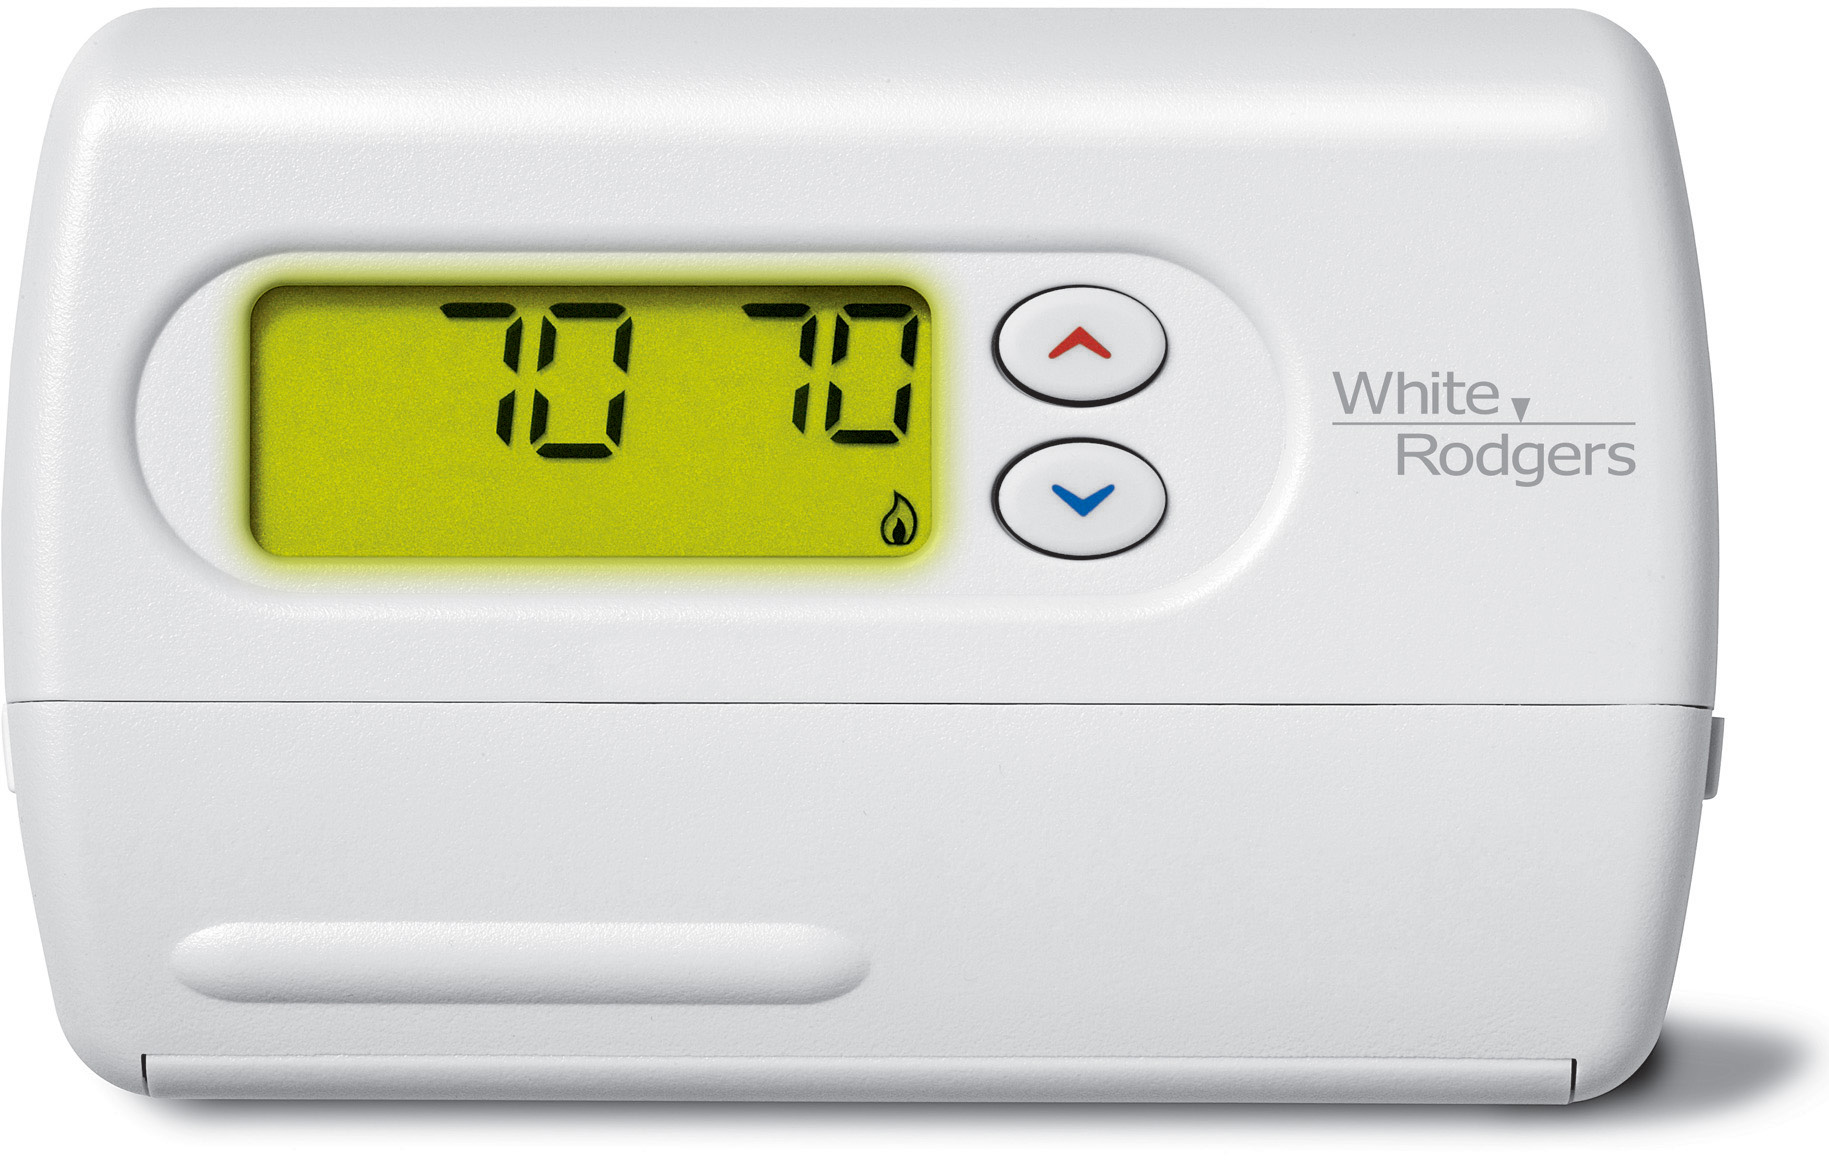 White Rodgers Wall Thermostats